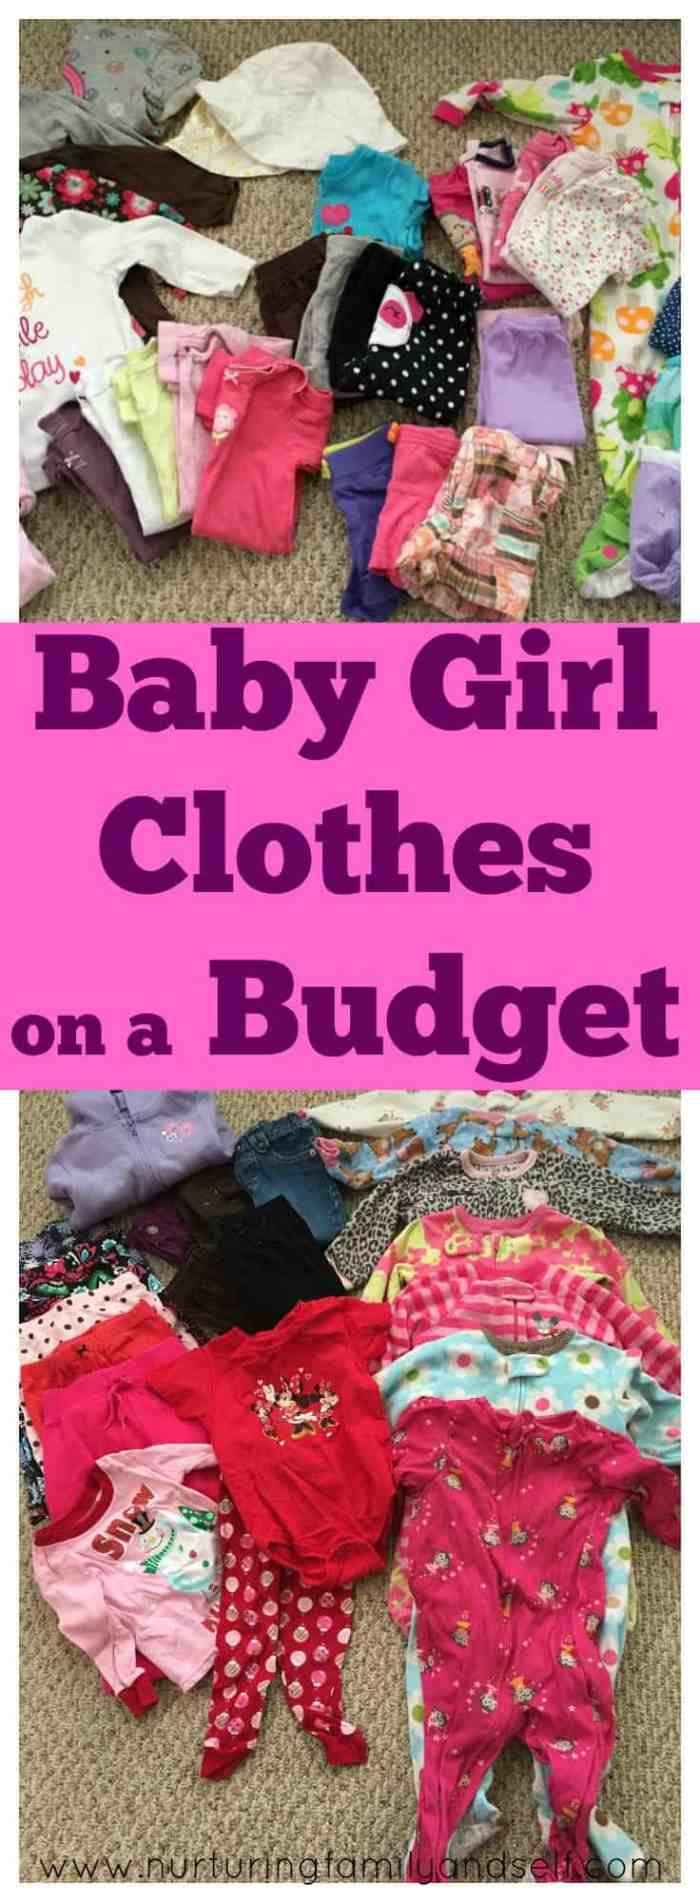 Baby Girl Clothes on a Budget Pinnable Image